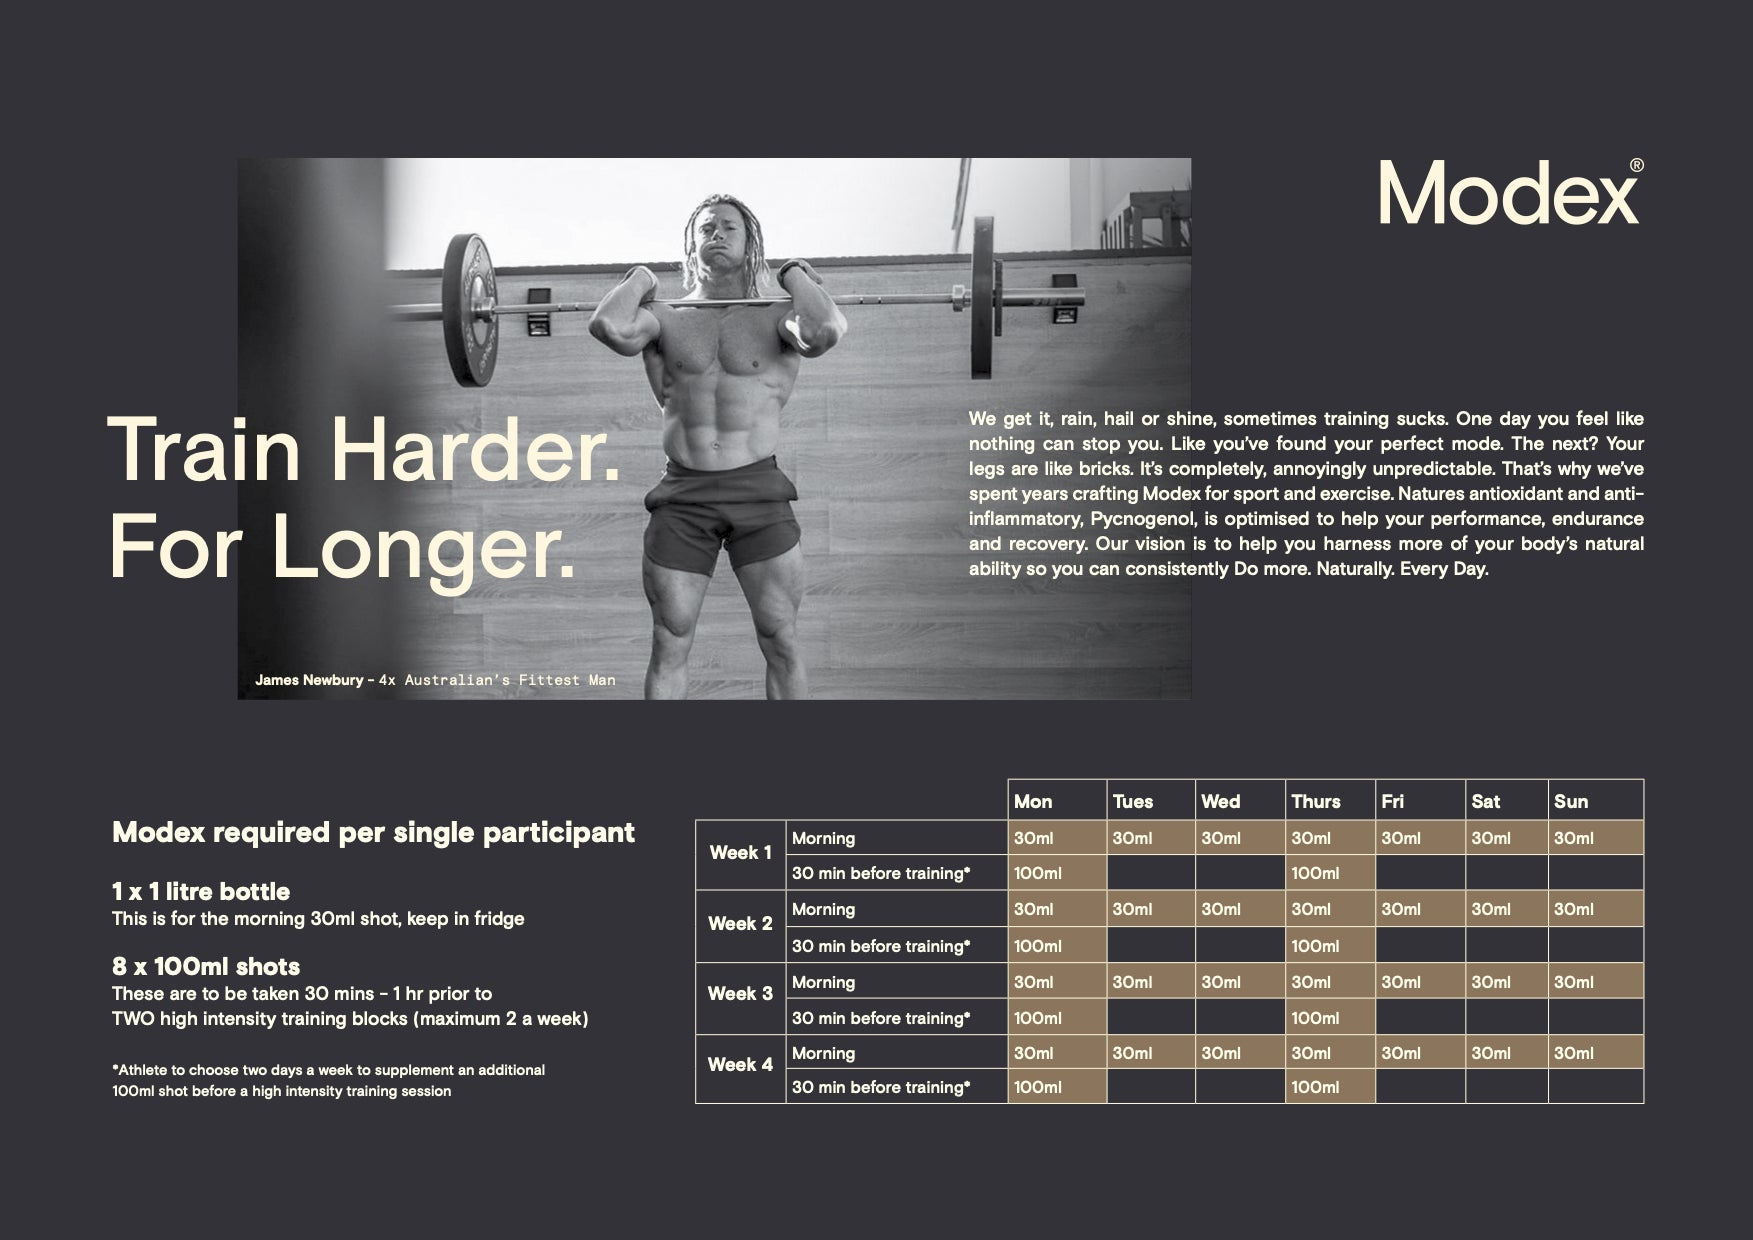 Modex 4 week training program